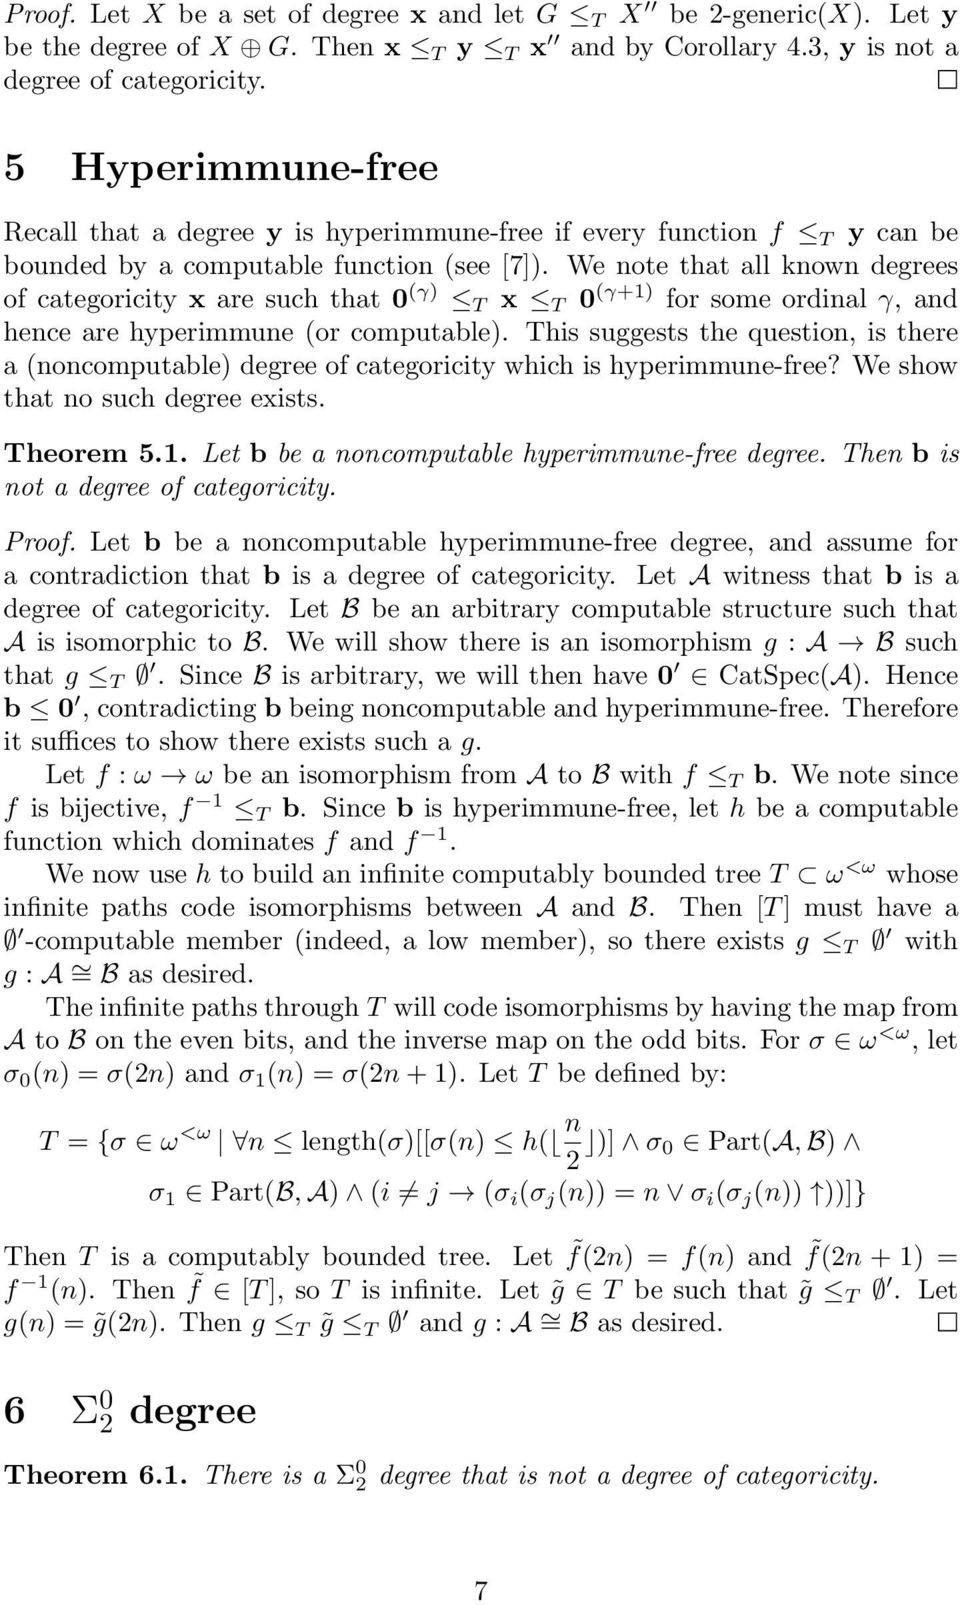 We note that all known degrees of categoricity x are such that 0 (γ) T x T 0 (γ+1) for some ordinal γ, and hence are hyperimmune (or computable).